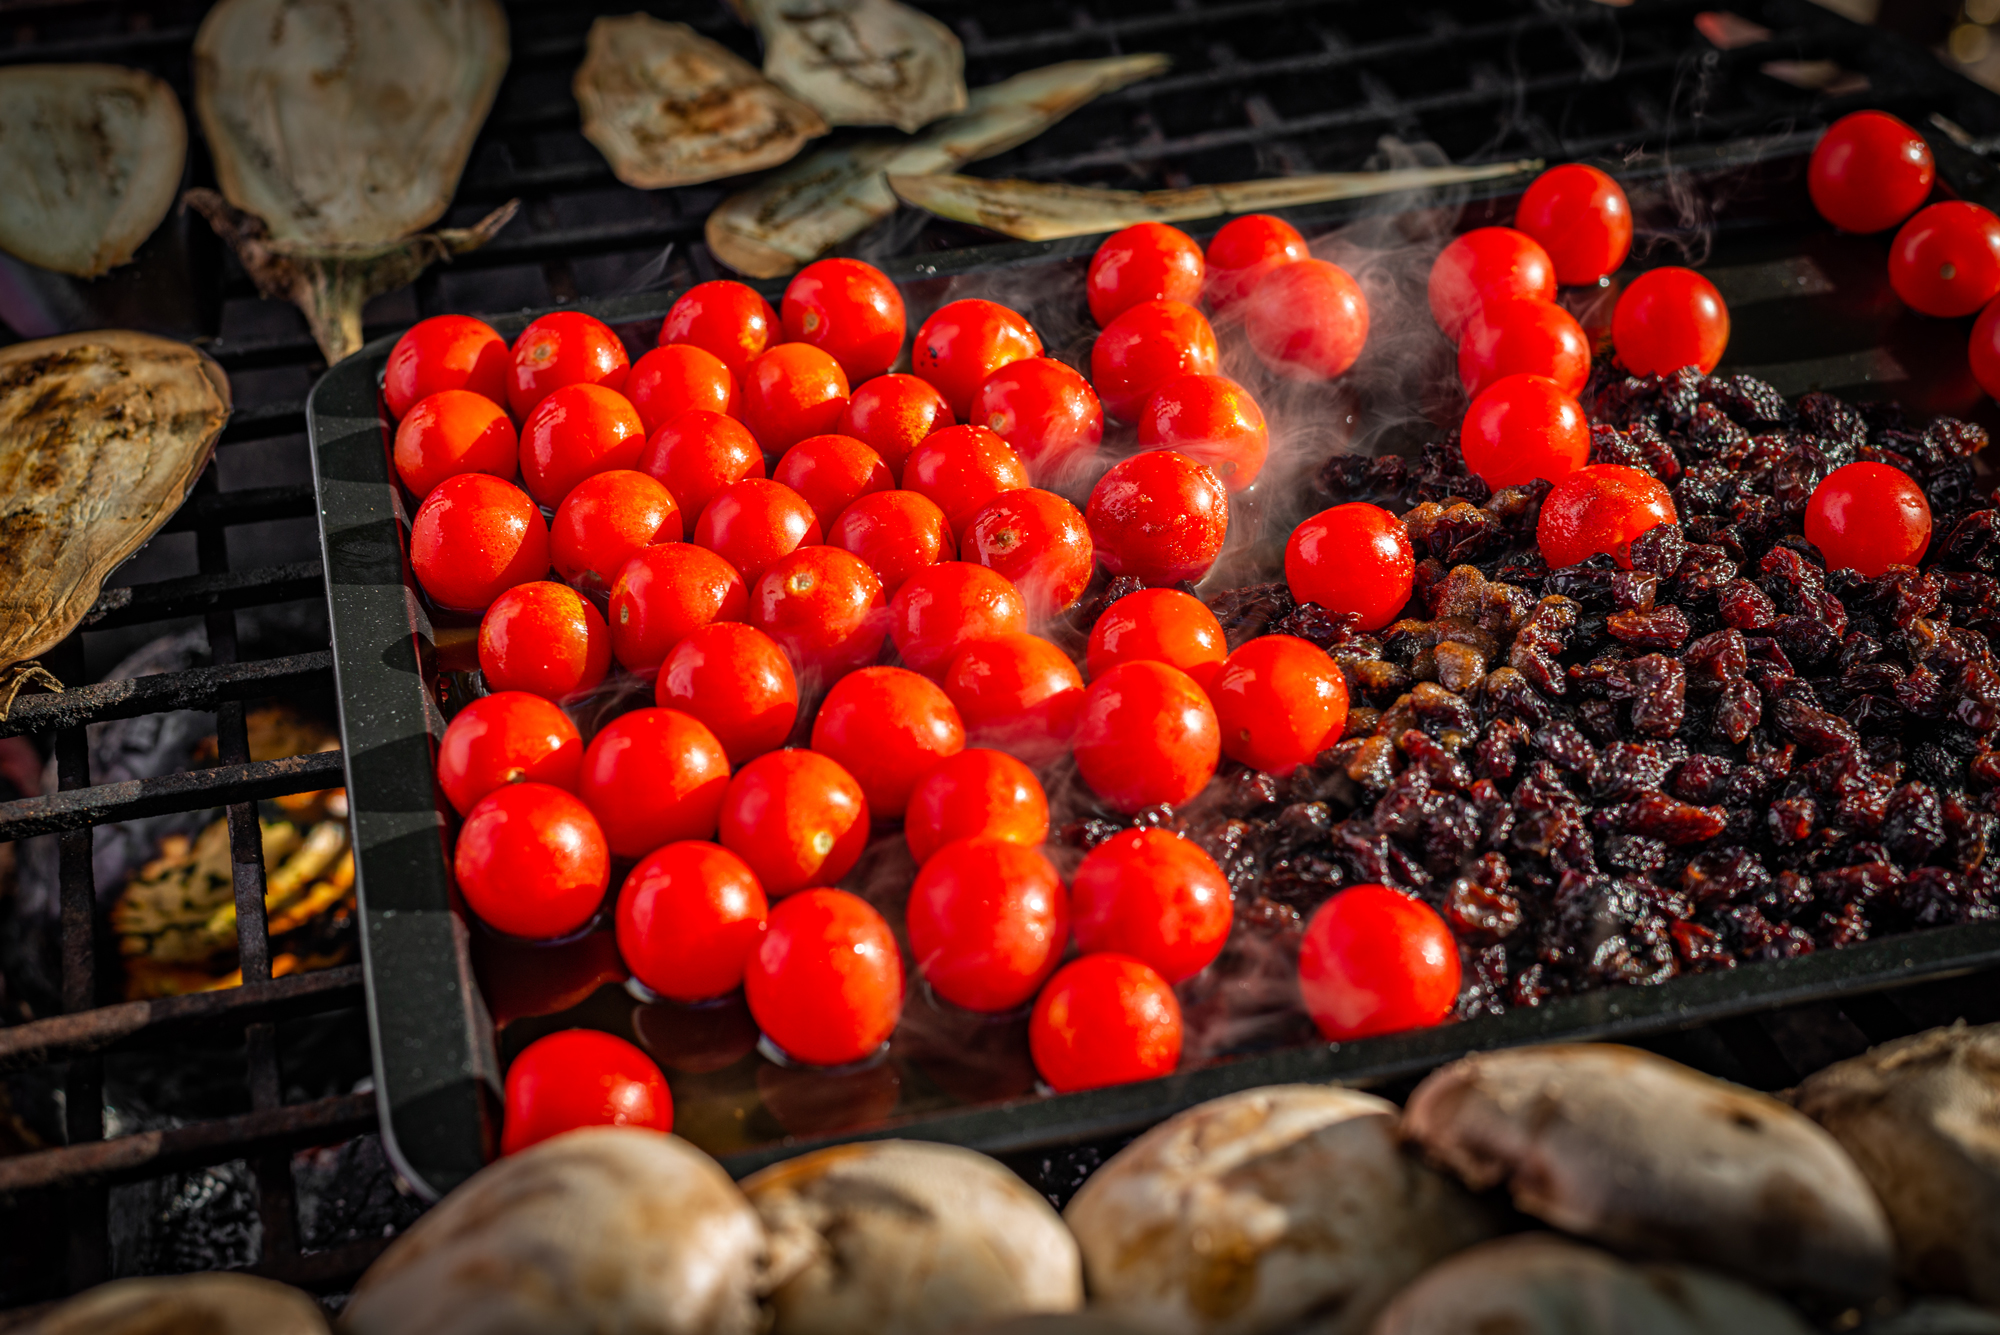 Dartmouth Food Festival 2019 cherry tomatoes on open fire